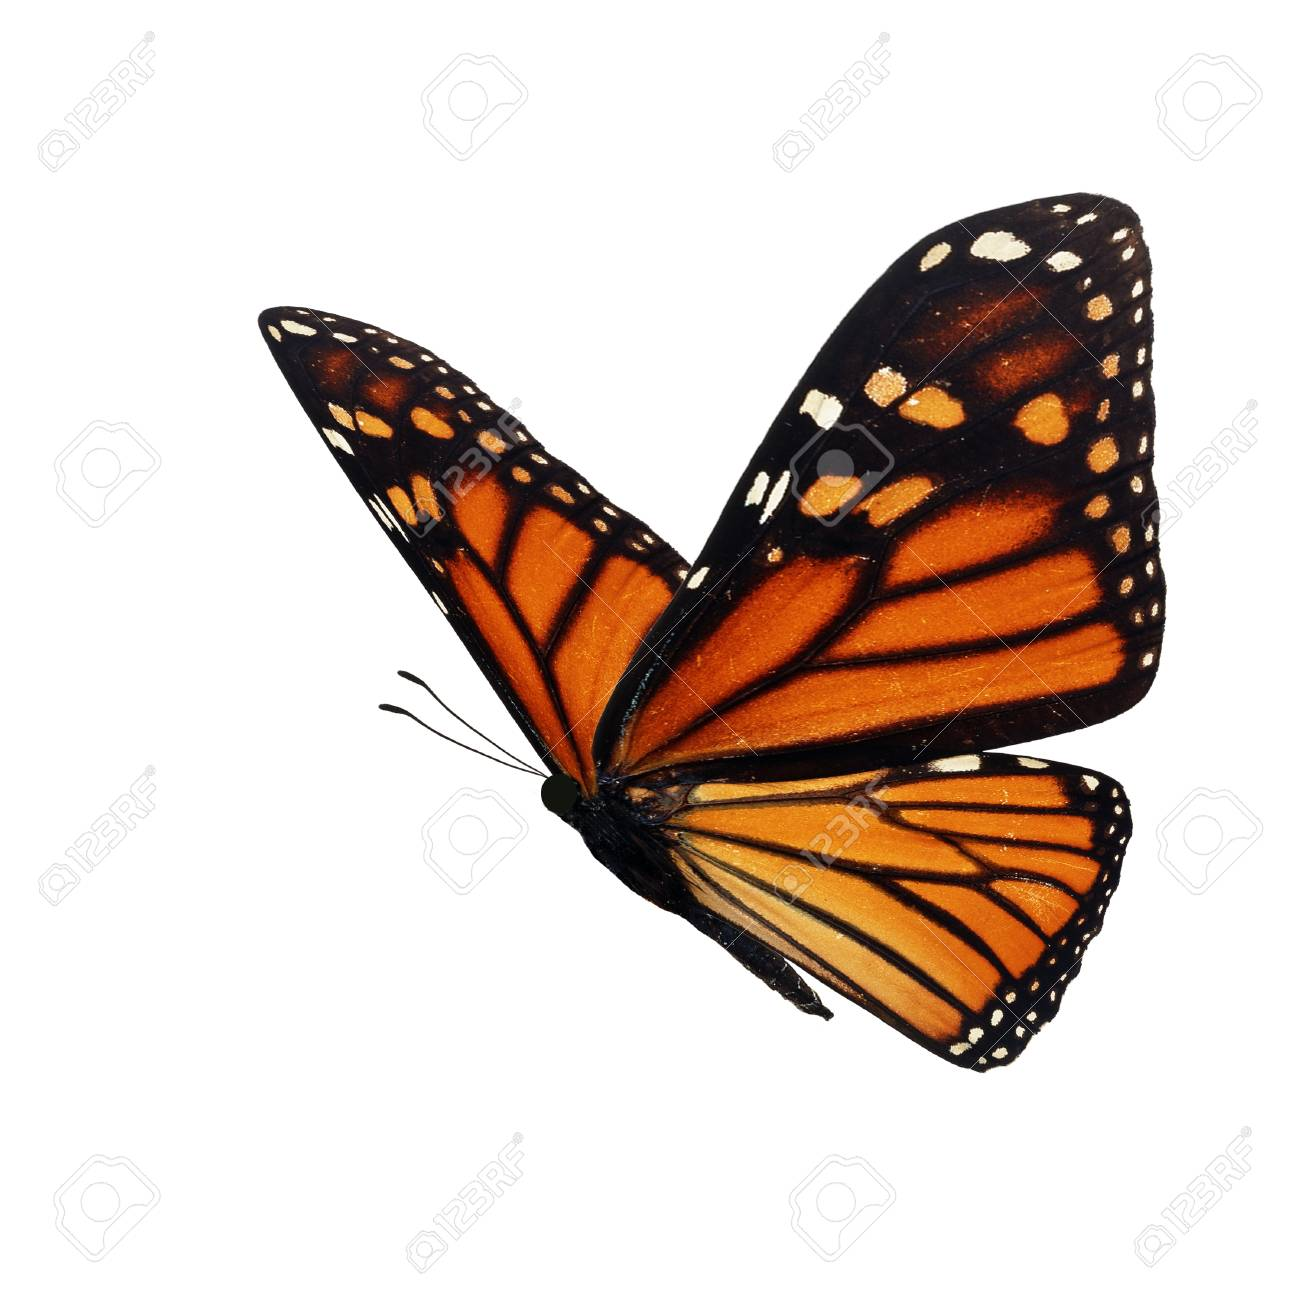 Beautiful monarch butterfly isolated on white background. - 91200165